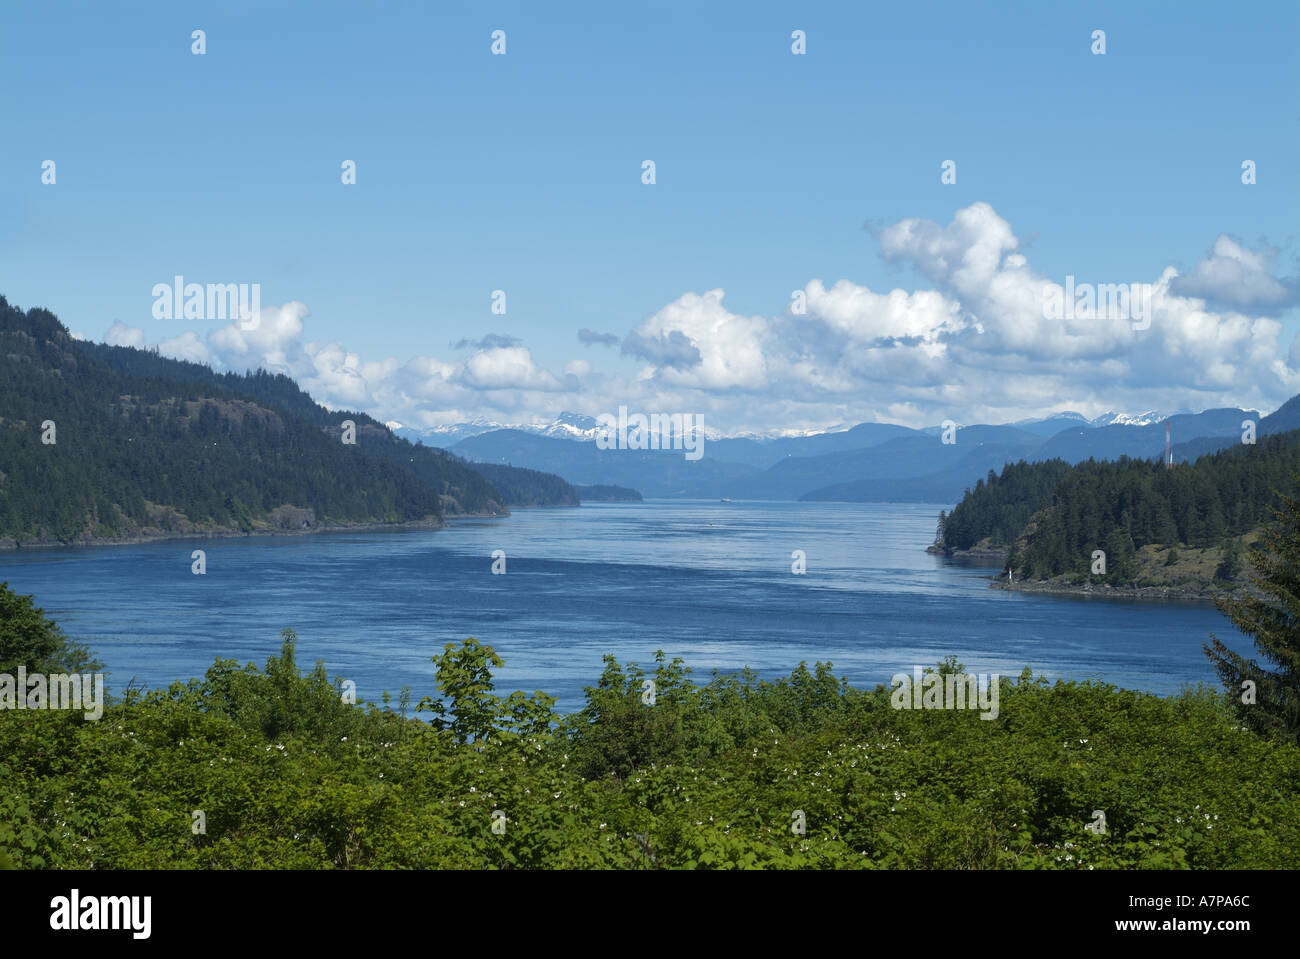 Seymour Narrows Campbell River Vancouver Island British Columbia Canada